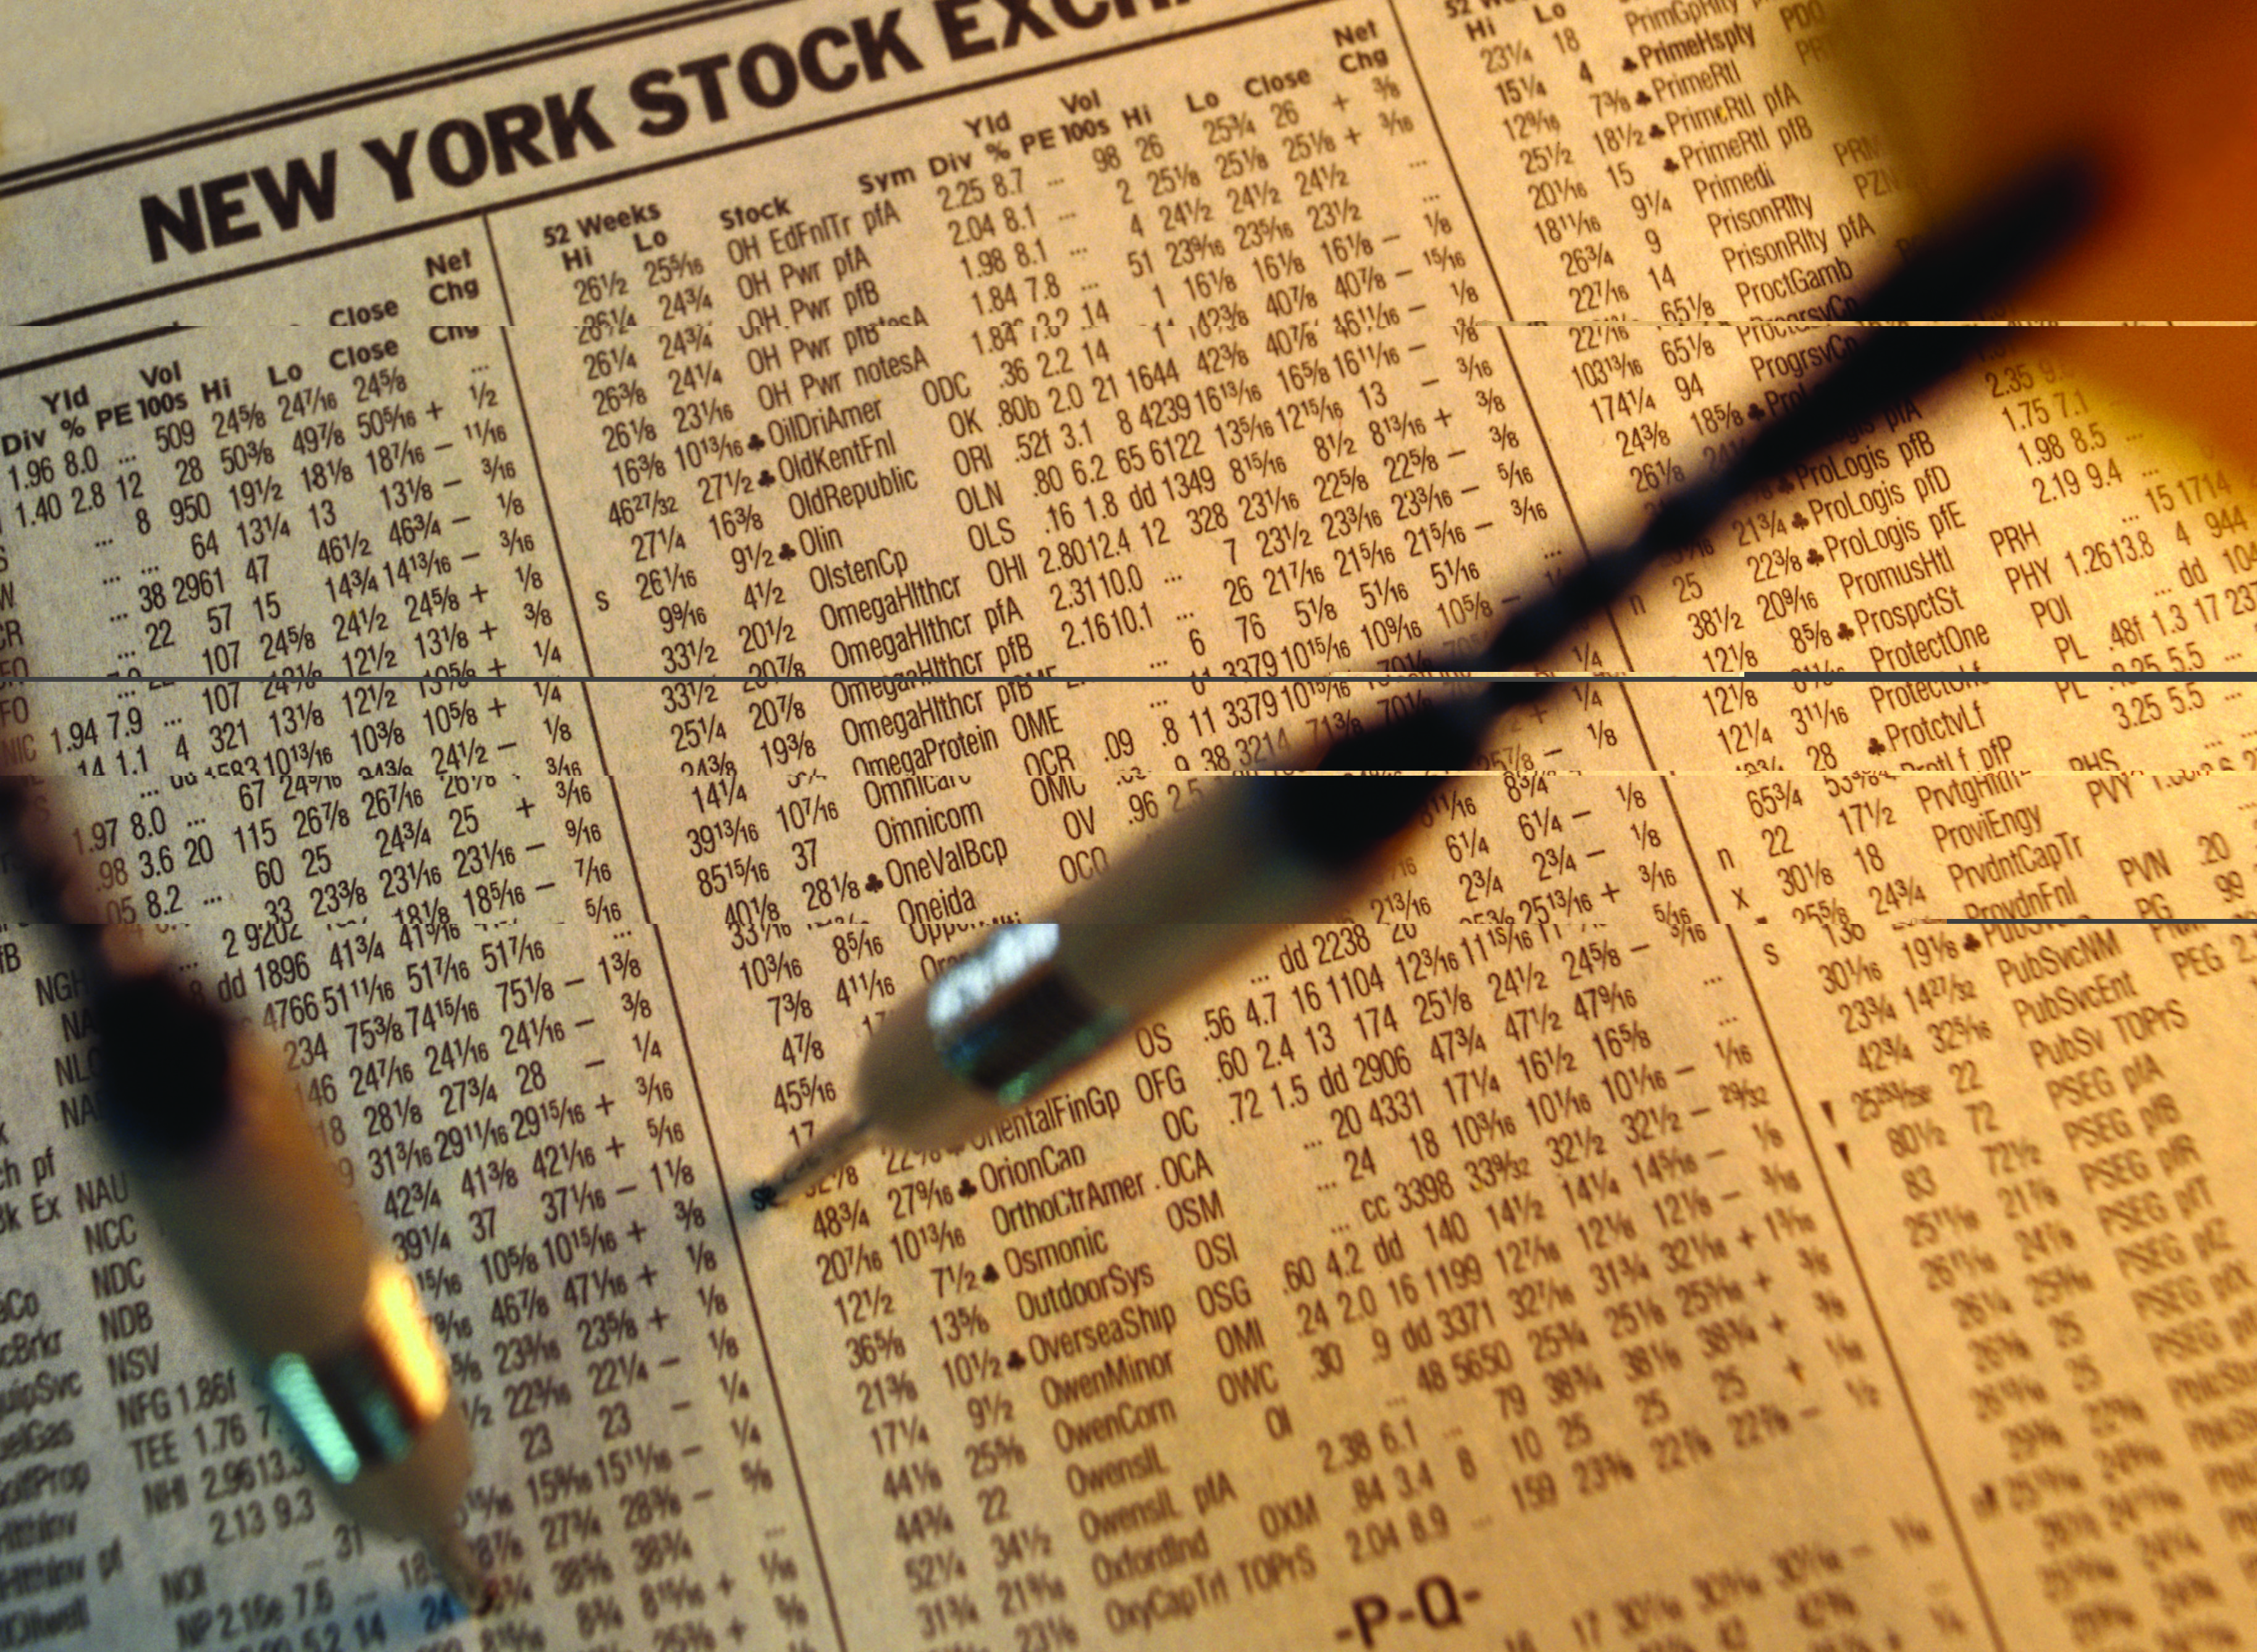 After The Fall: Asset Allocation And Rebalancing